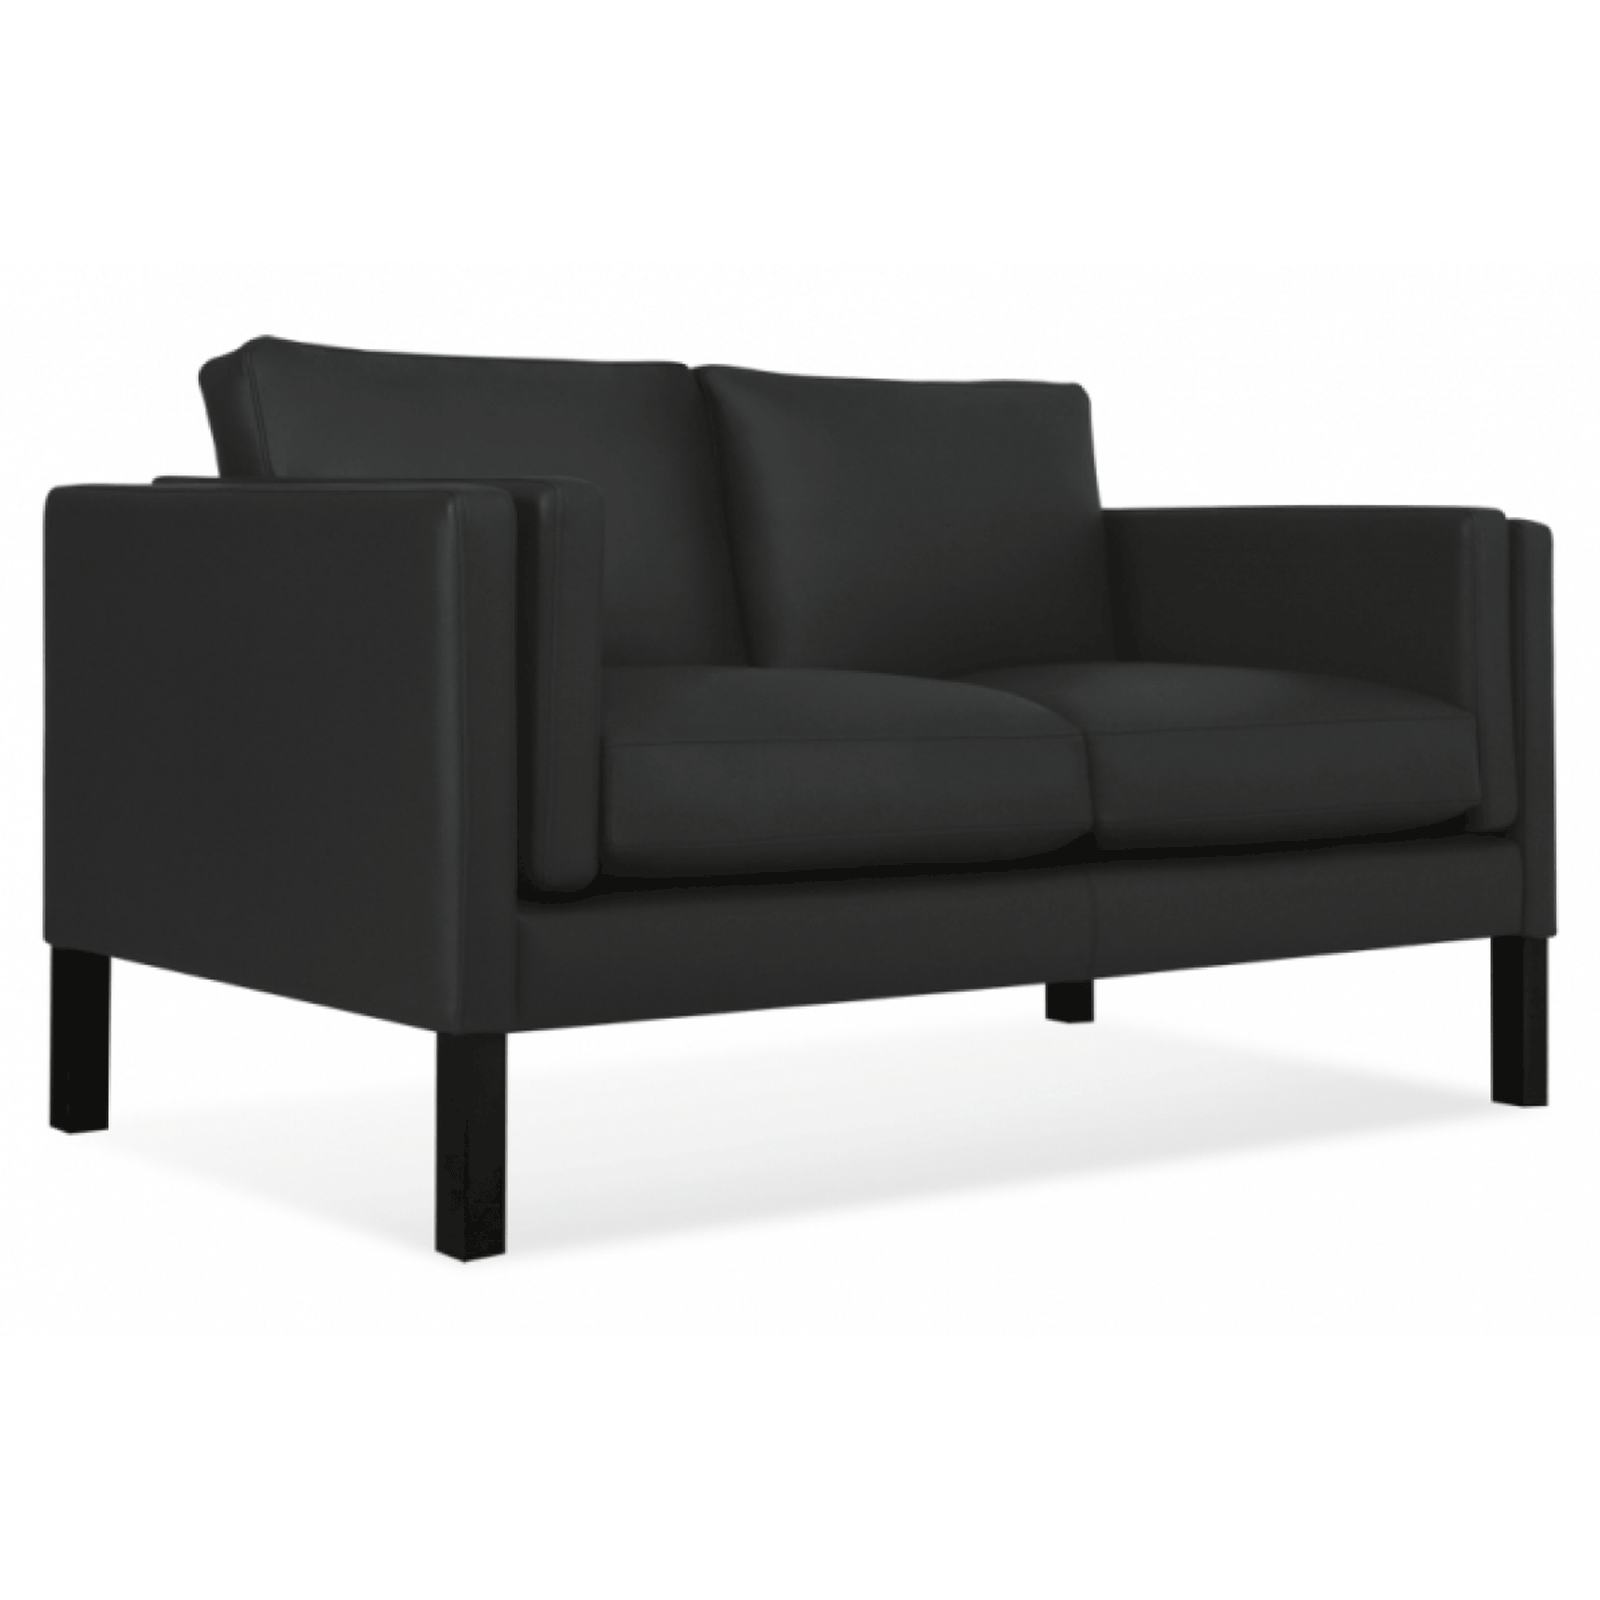 Get Cuddle Up In This Comfortable Sofa